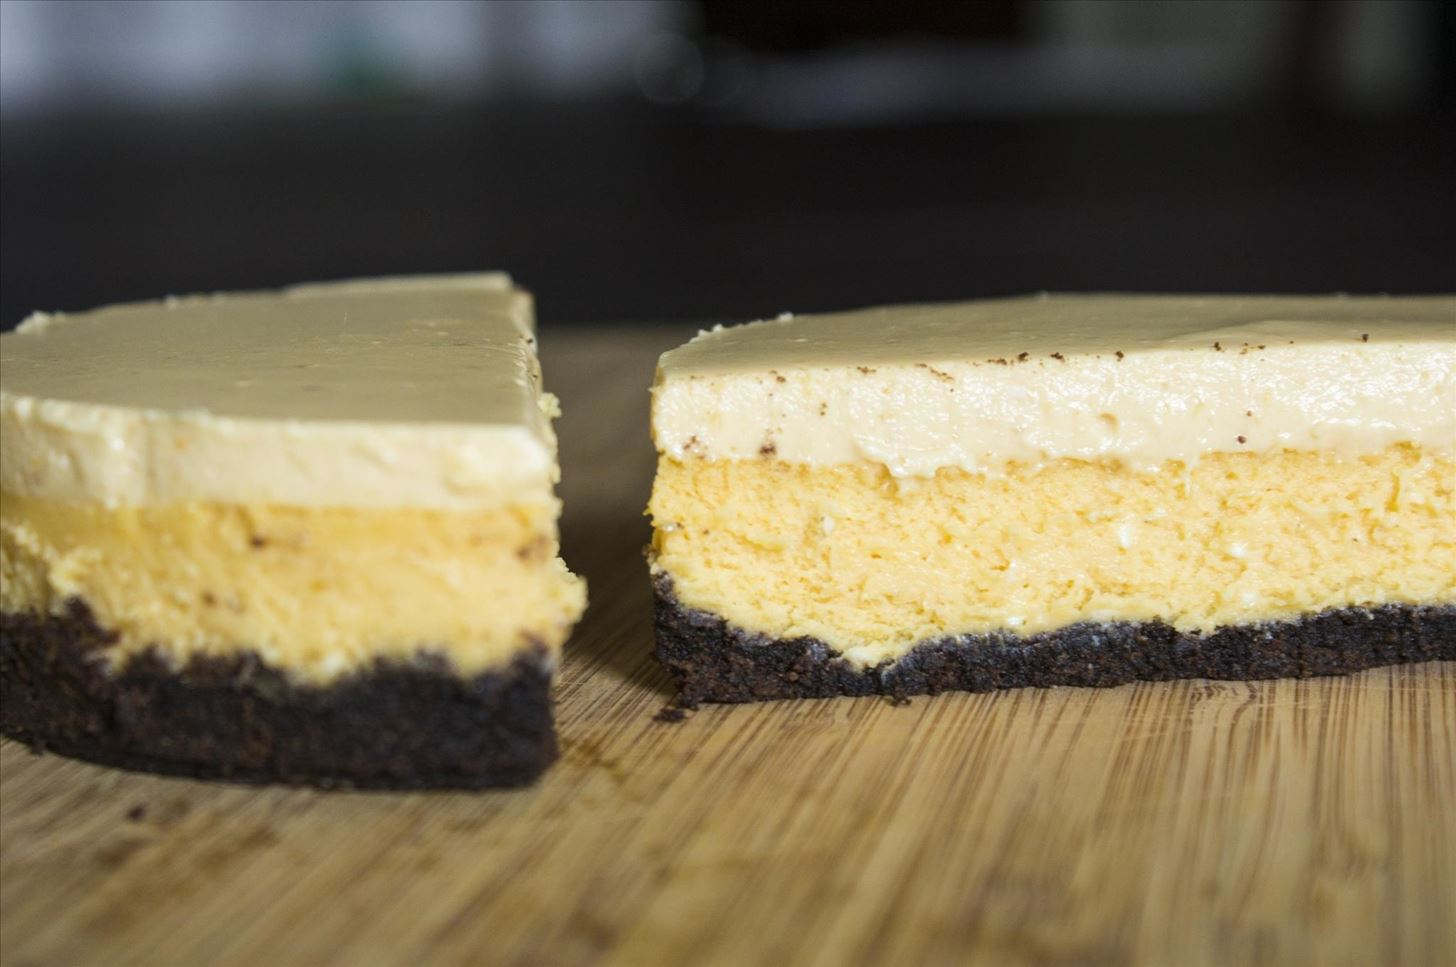 How to Prevent Cracks in Cheesecake (Or Fix Them in a Hurry)